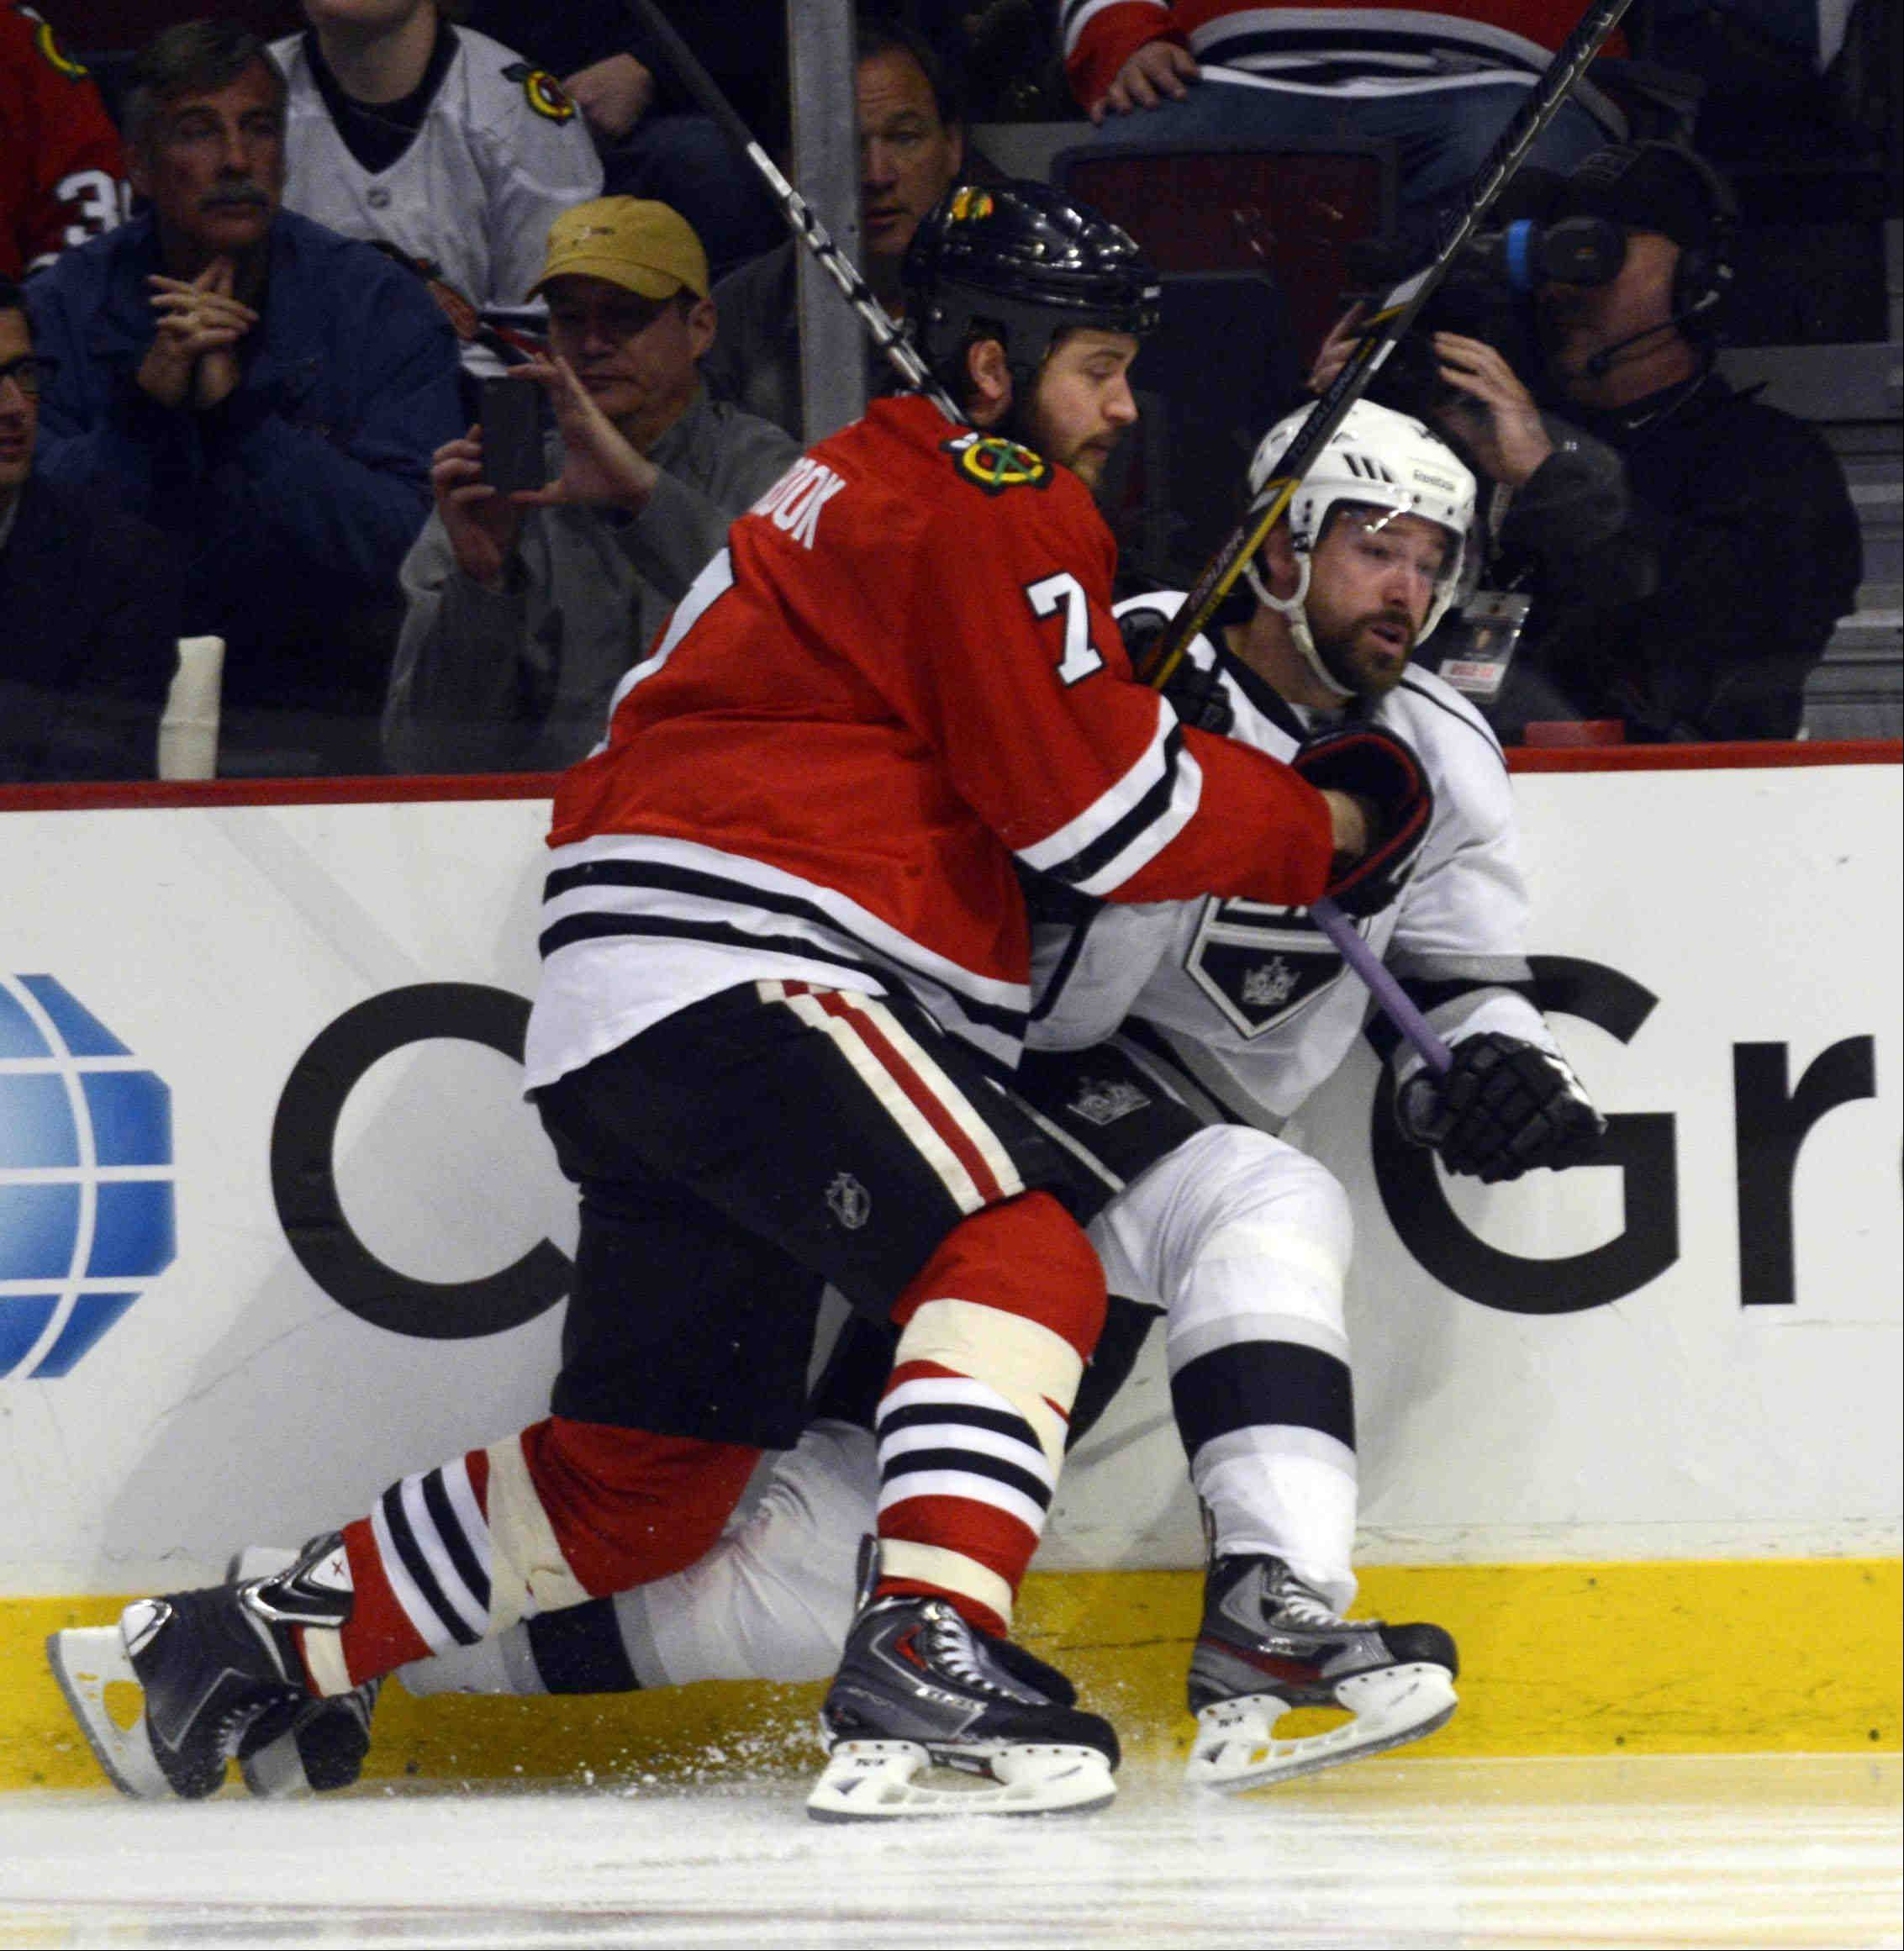 Chicago Blackhawks defenseman Brent Seabrook pins Los Angeles Kings right wing Justin Williams against the boards in the second period during game 2 of the NHL Western Conference finals at the United Center Sunday night in Chicago.